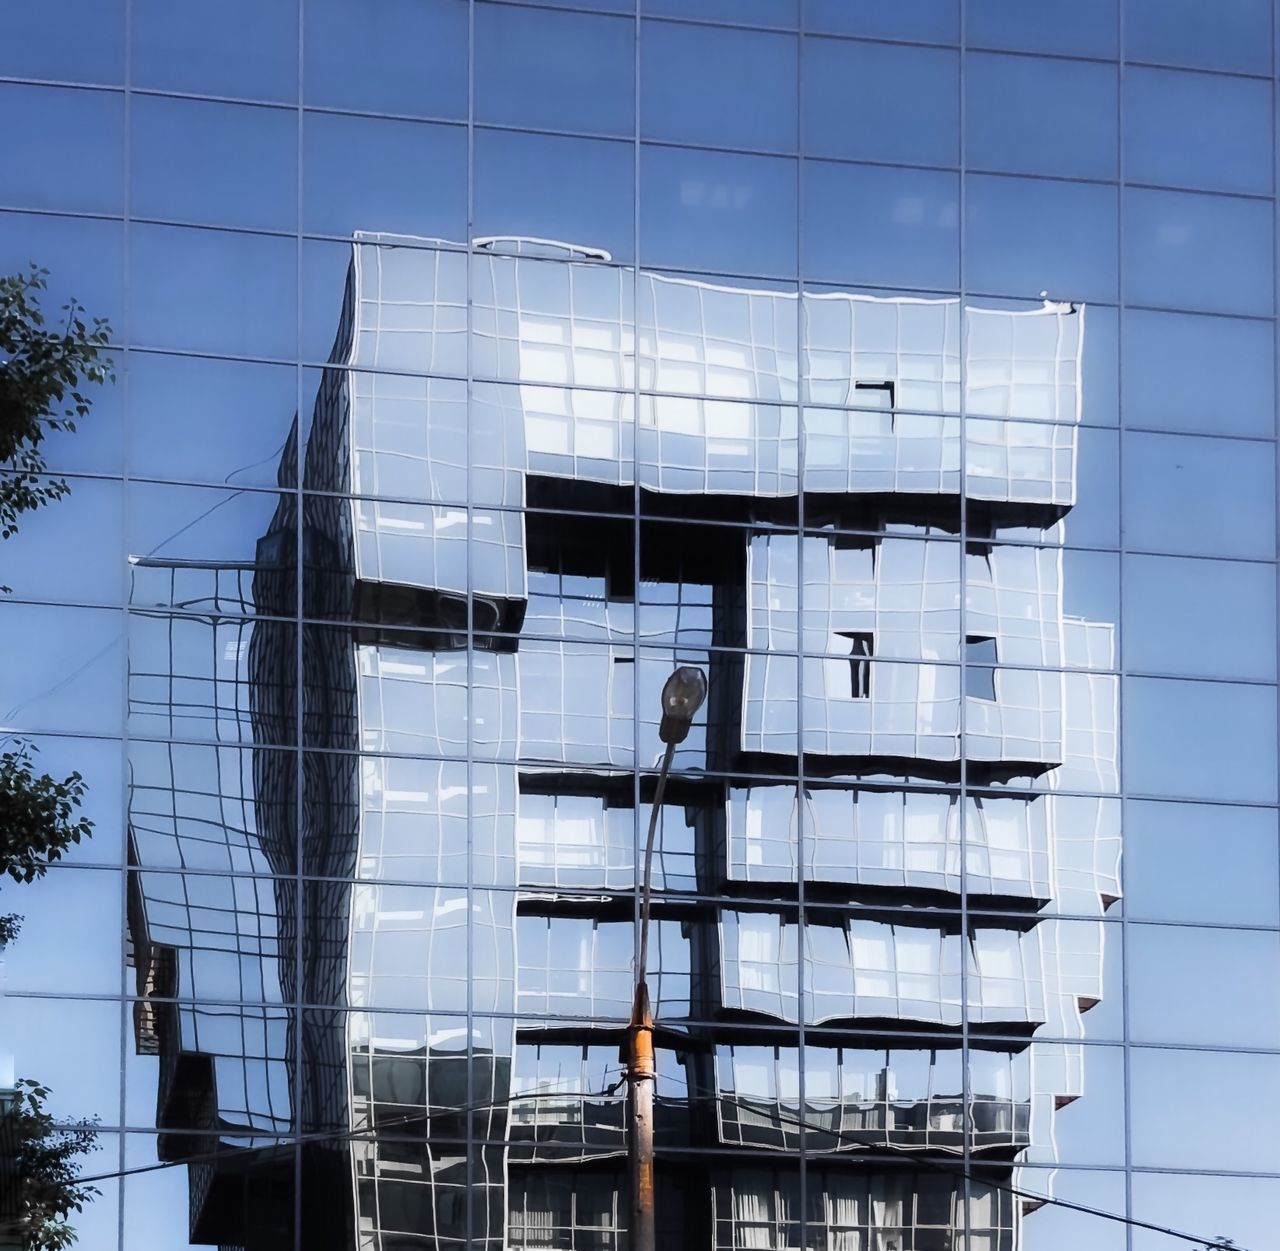 LOW ANGLE VIEW OF OFFICE BUILDING IN GLASS